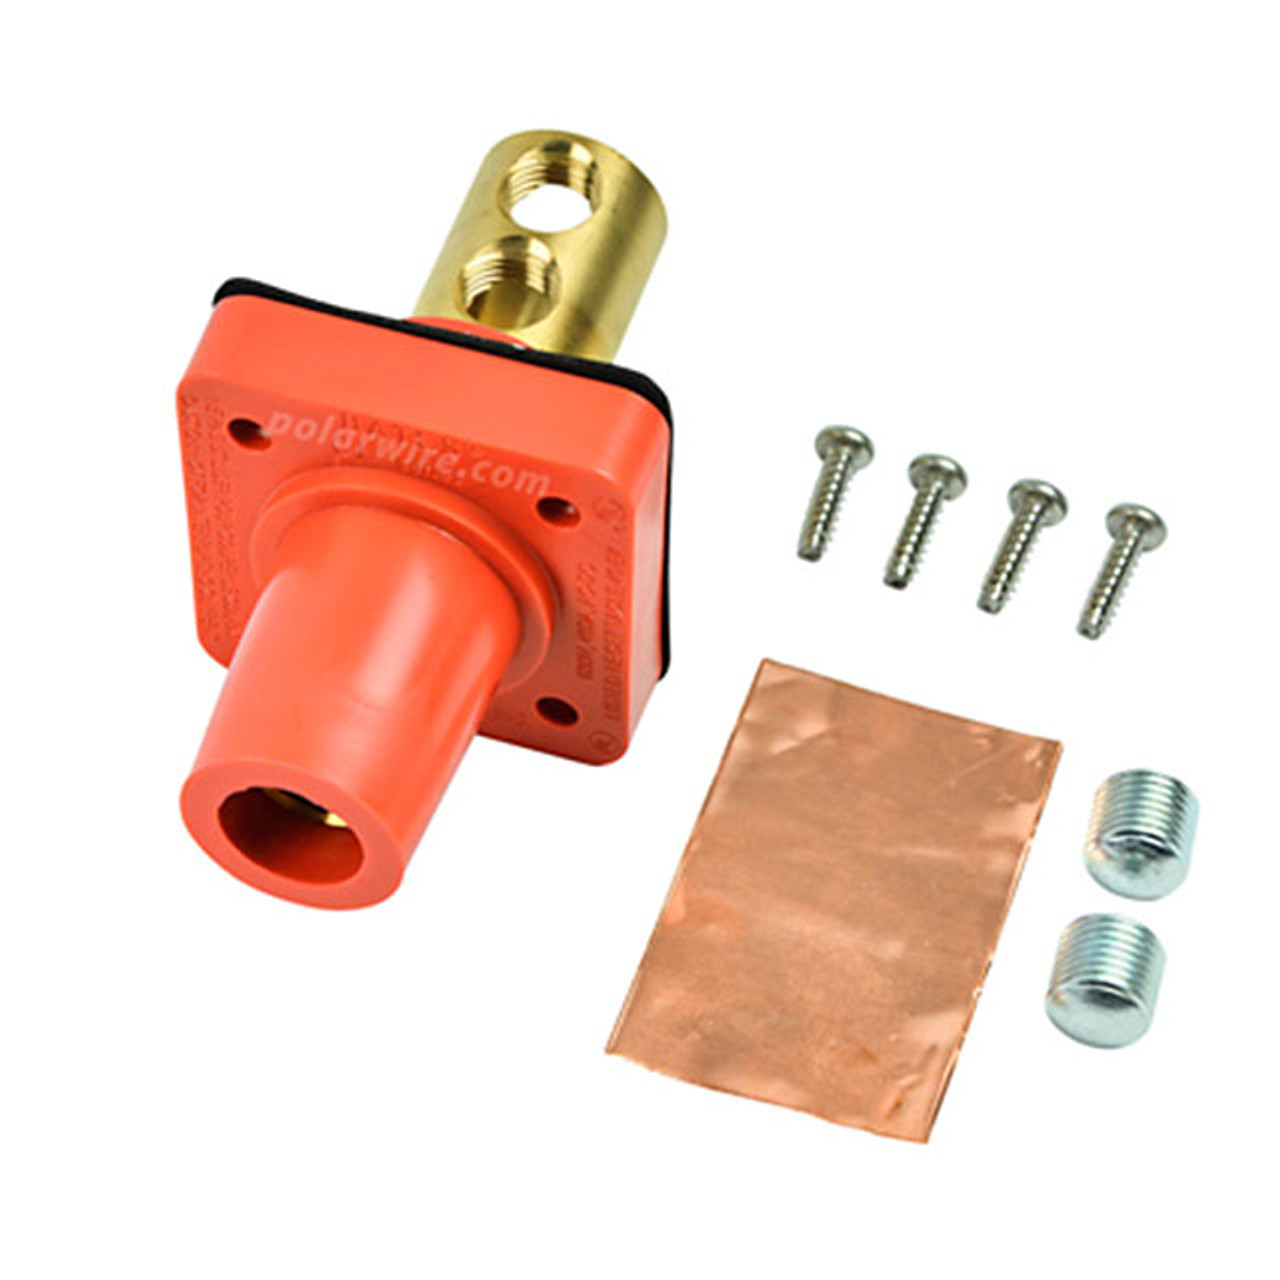 CAM LOCK 400A PANEL FEM ORANGE SET SCREW 2/0-4/0